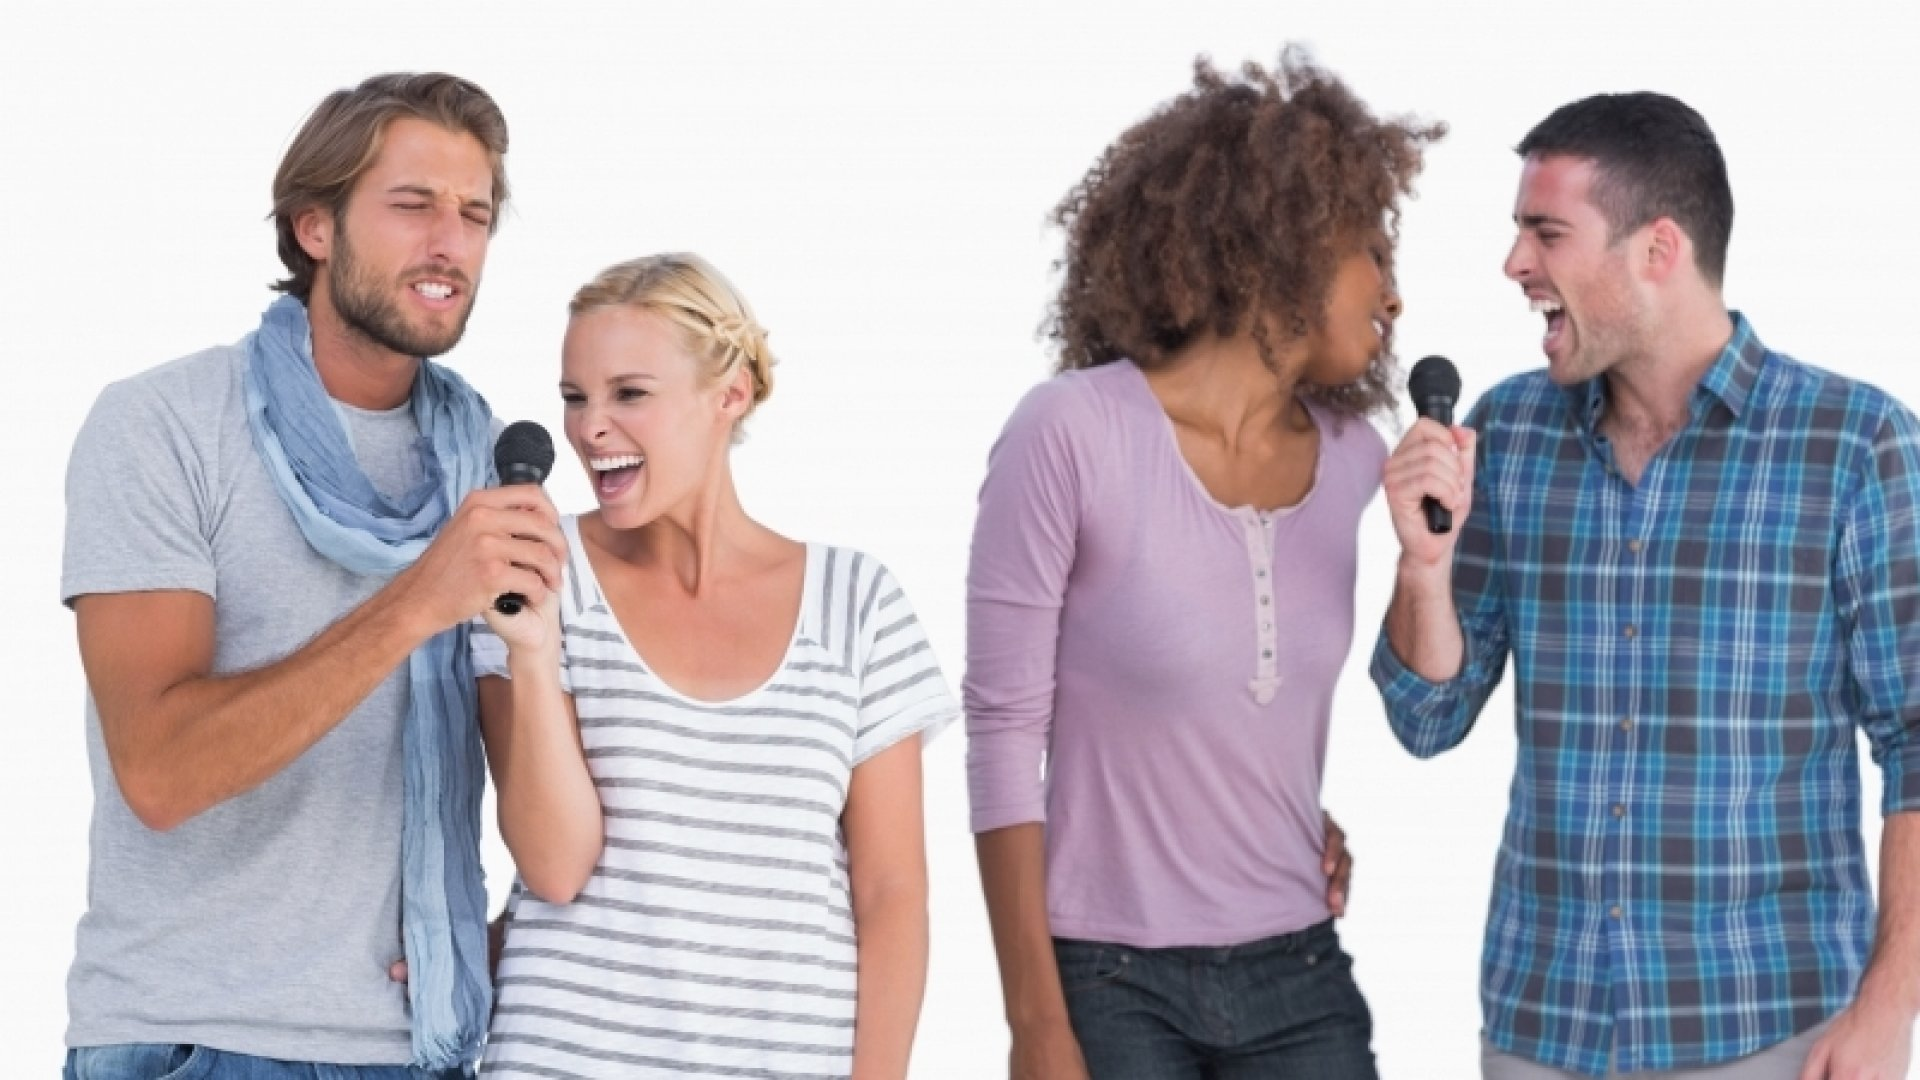 14 Things Succe– Ah, Forget It, Let's Have a Holiday Karaoke Party!